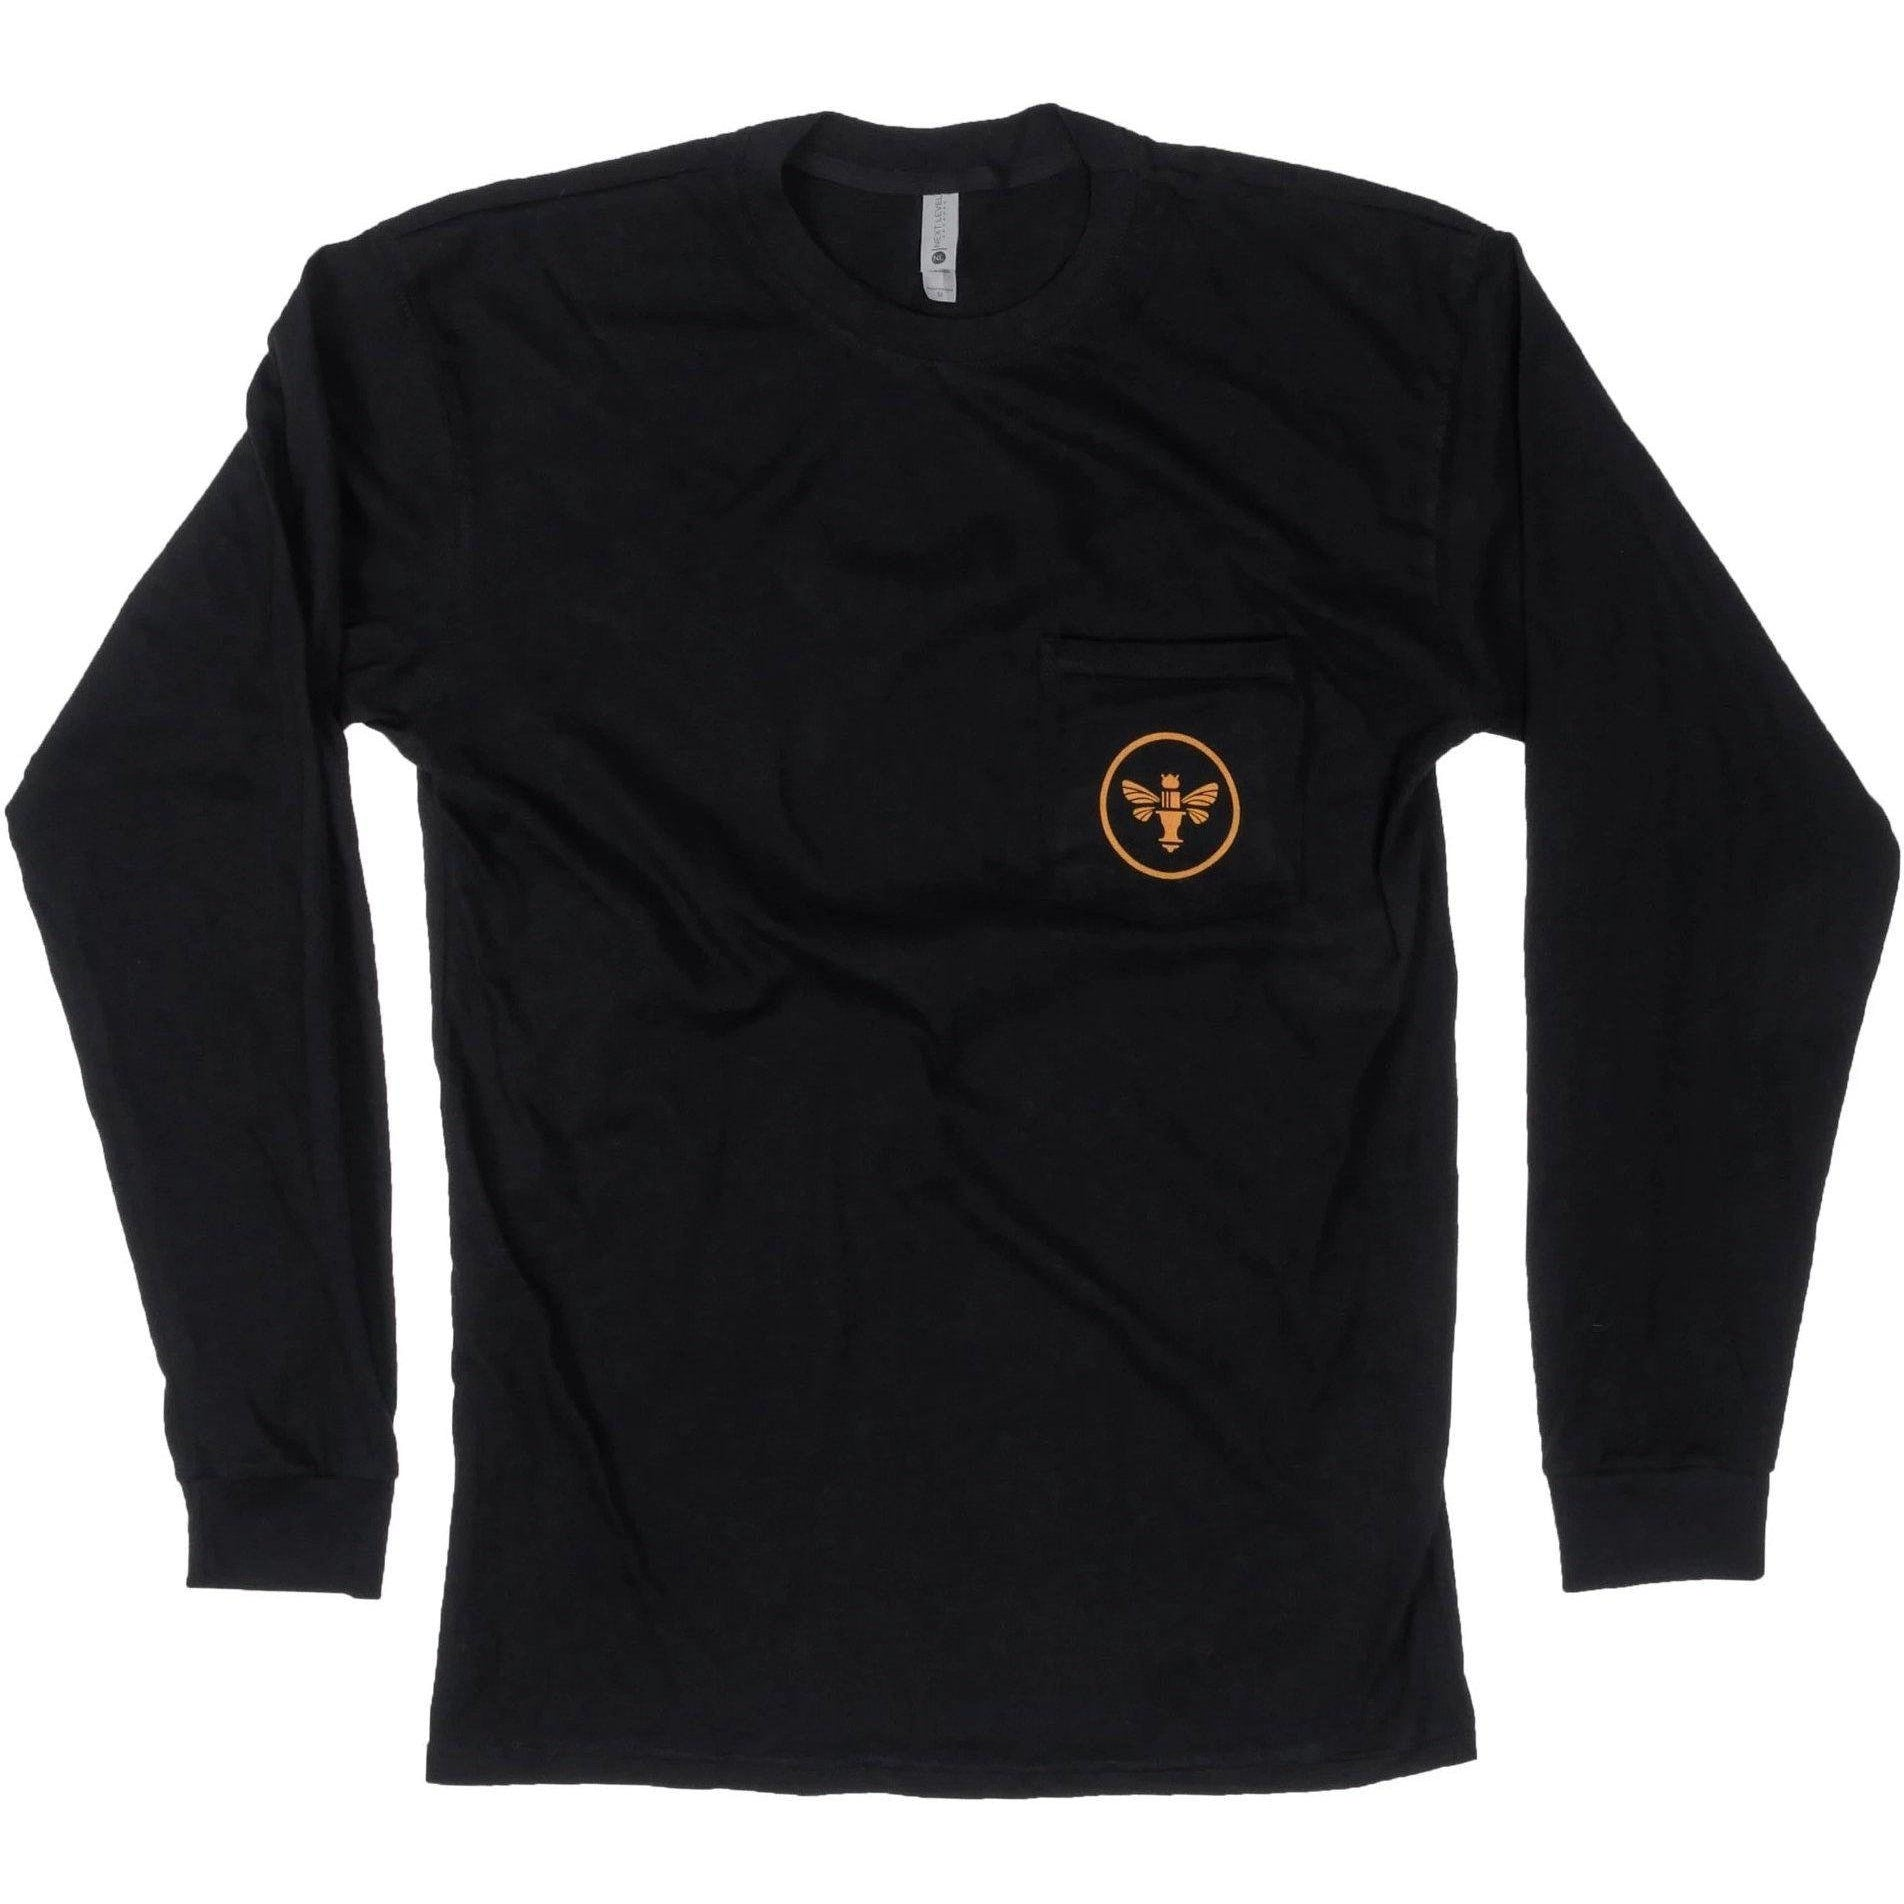 Chris King-Chris King King Bee Long Sleeve Pocket T-Shirt-X-Small-Black-CKC0571-saddleback-elite-performance-cycling